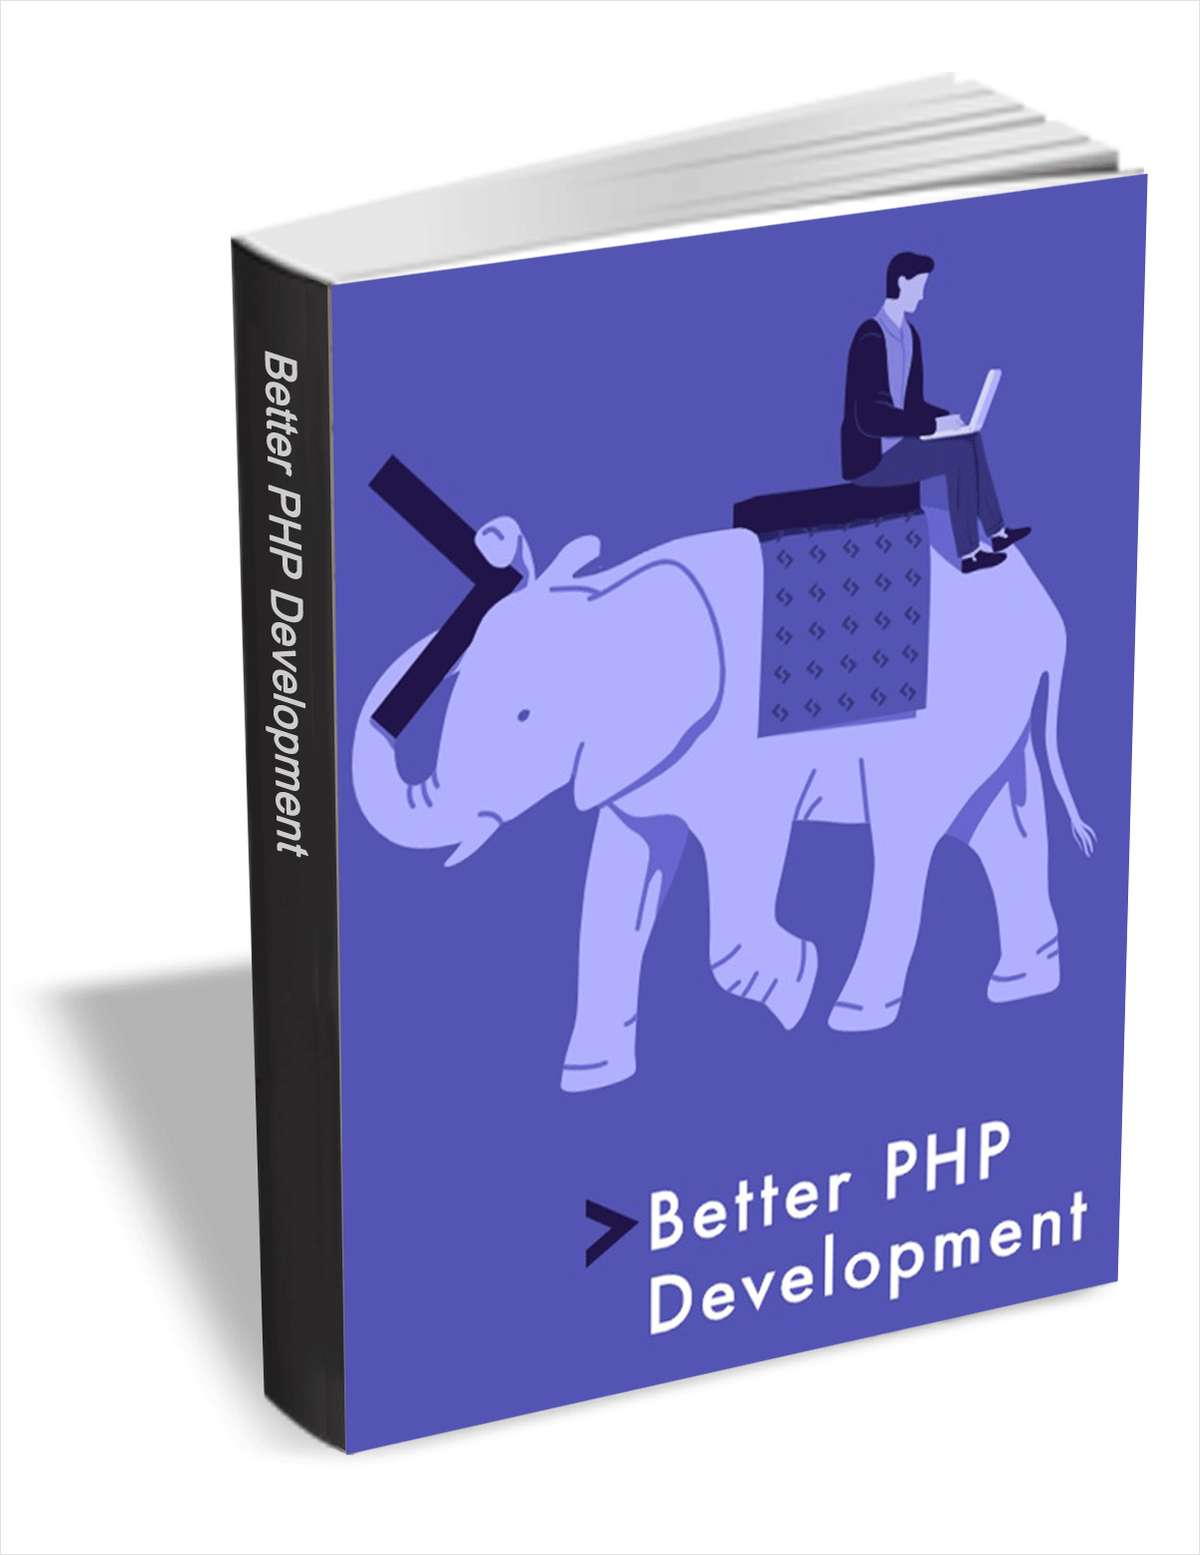 Better PHP Development ($4.99 Value FREE for a Limited Time)